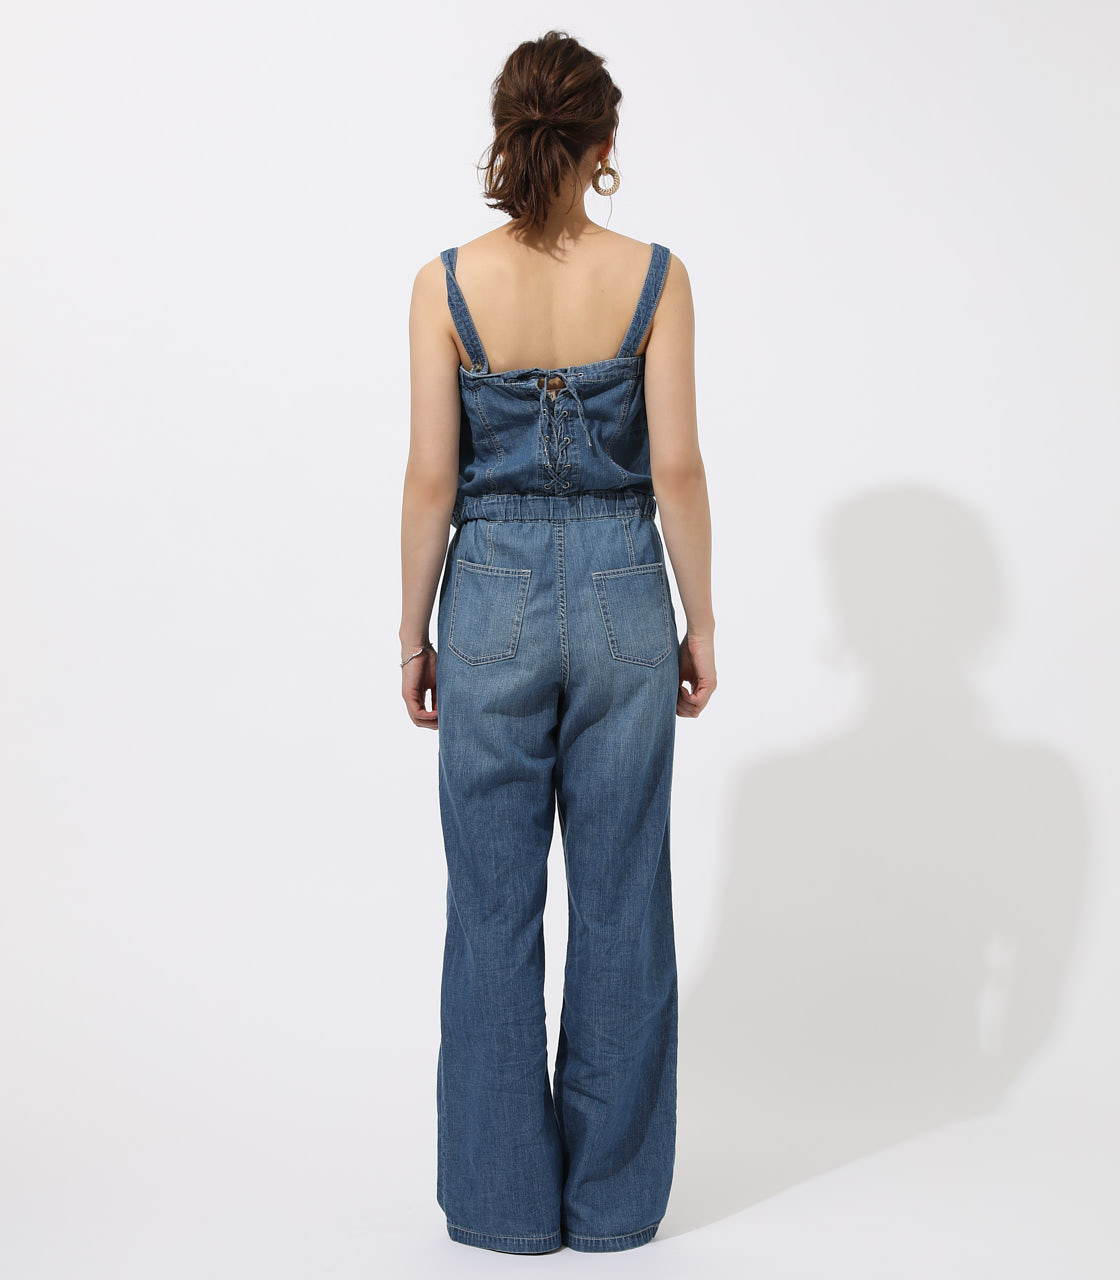 BACK LACEUP OVERALLS 詳細画像 BLU 6